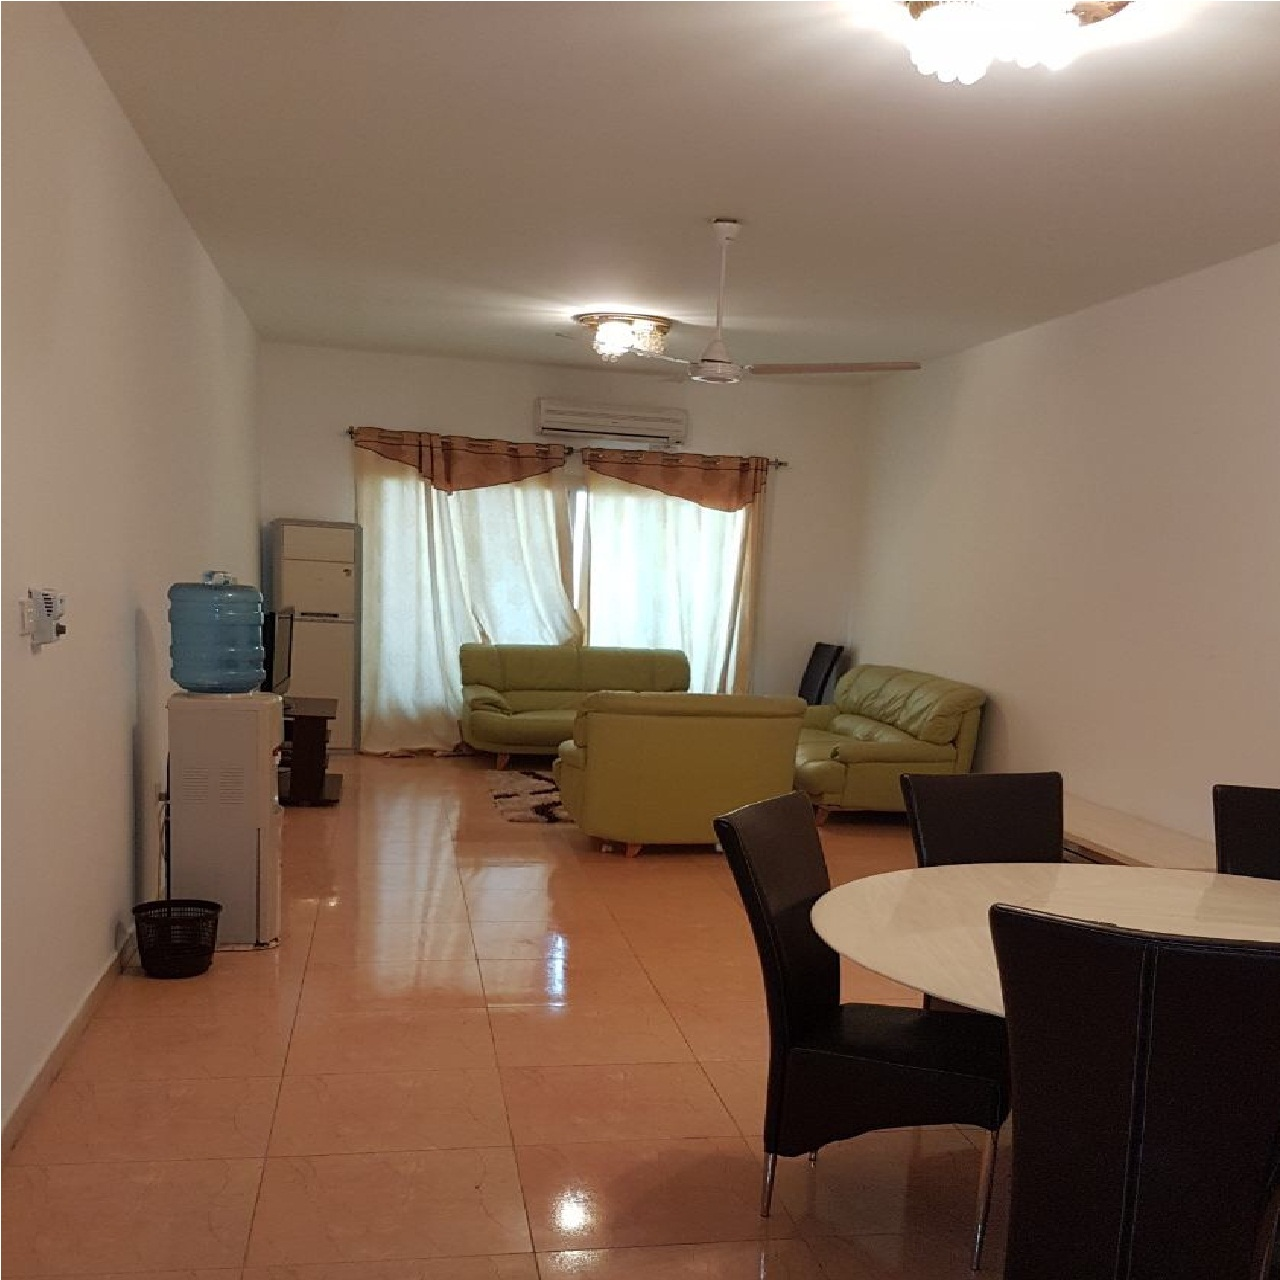 2 Bed Apartments For Rent: 2 Bedroom Apartment For Rent At Haramous Djibouti